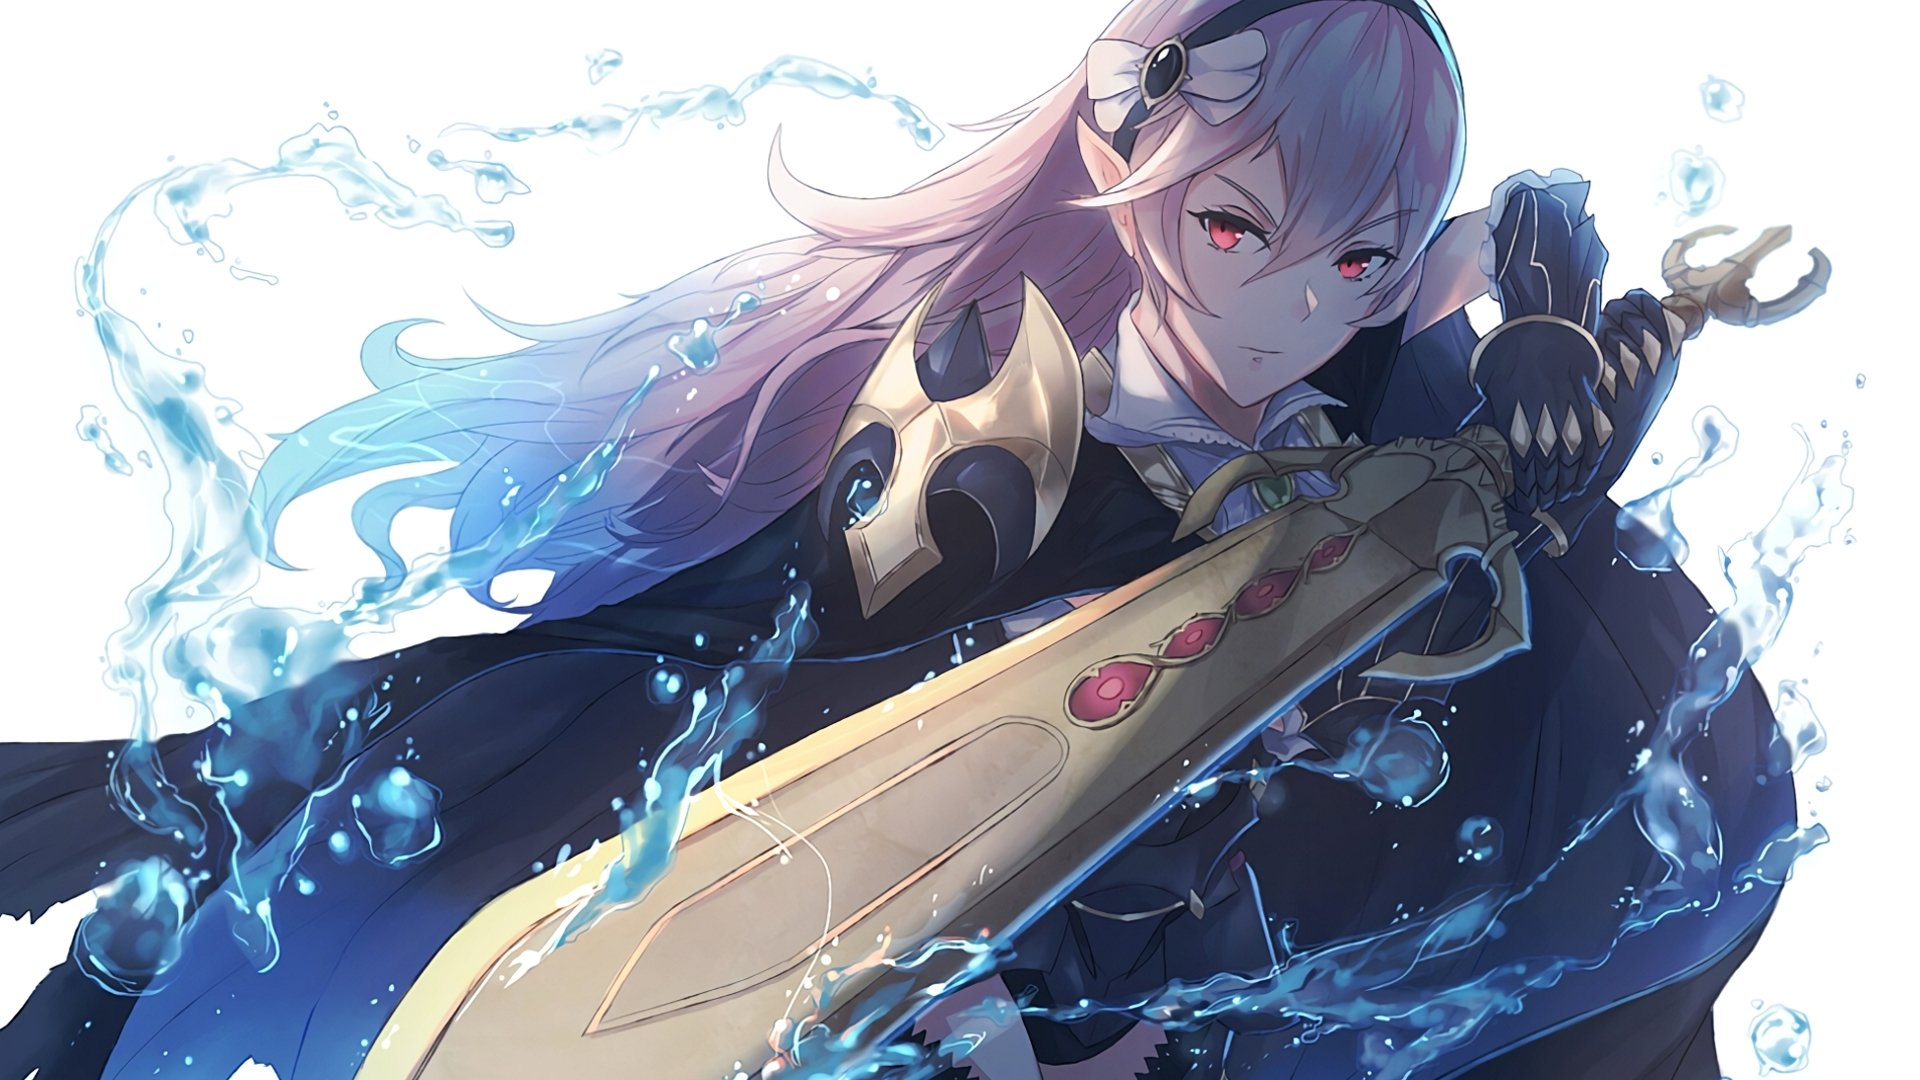 Fire Emblem Fates Hd Wallpaper Background Image 1920x1080 Id